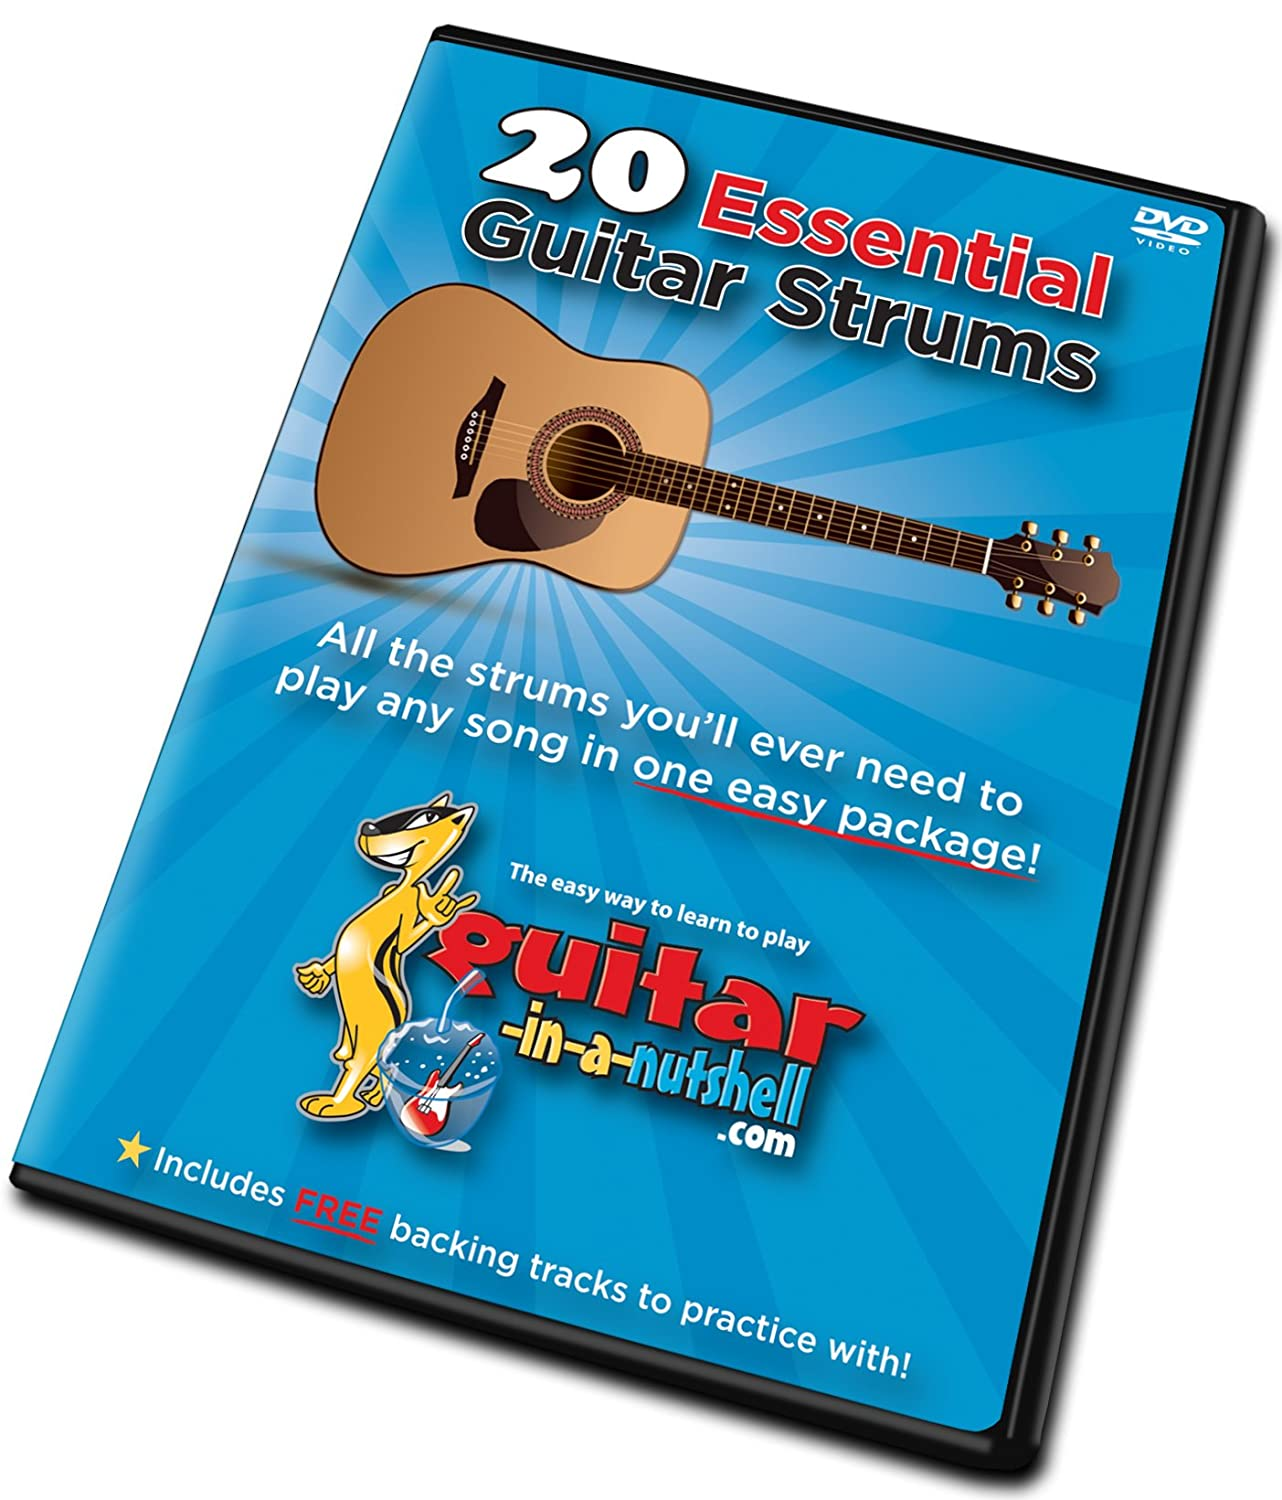 Learn How To Play Guitar Lessons Dvd My Top 20 The Secret Teacher Dounloadable Courses For Beginners Essential Strums 1000s Of Songs Perfect Free Along Backing